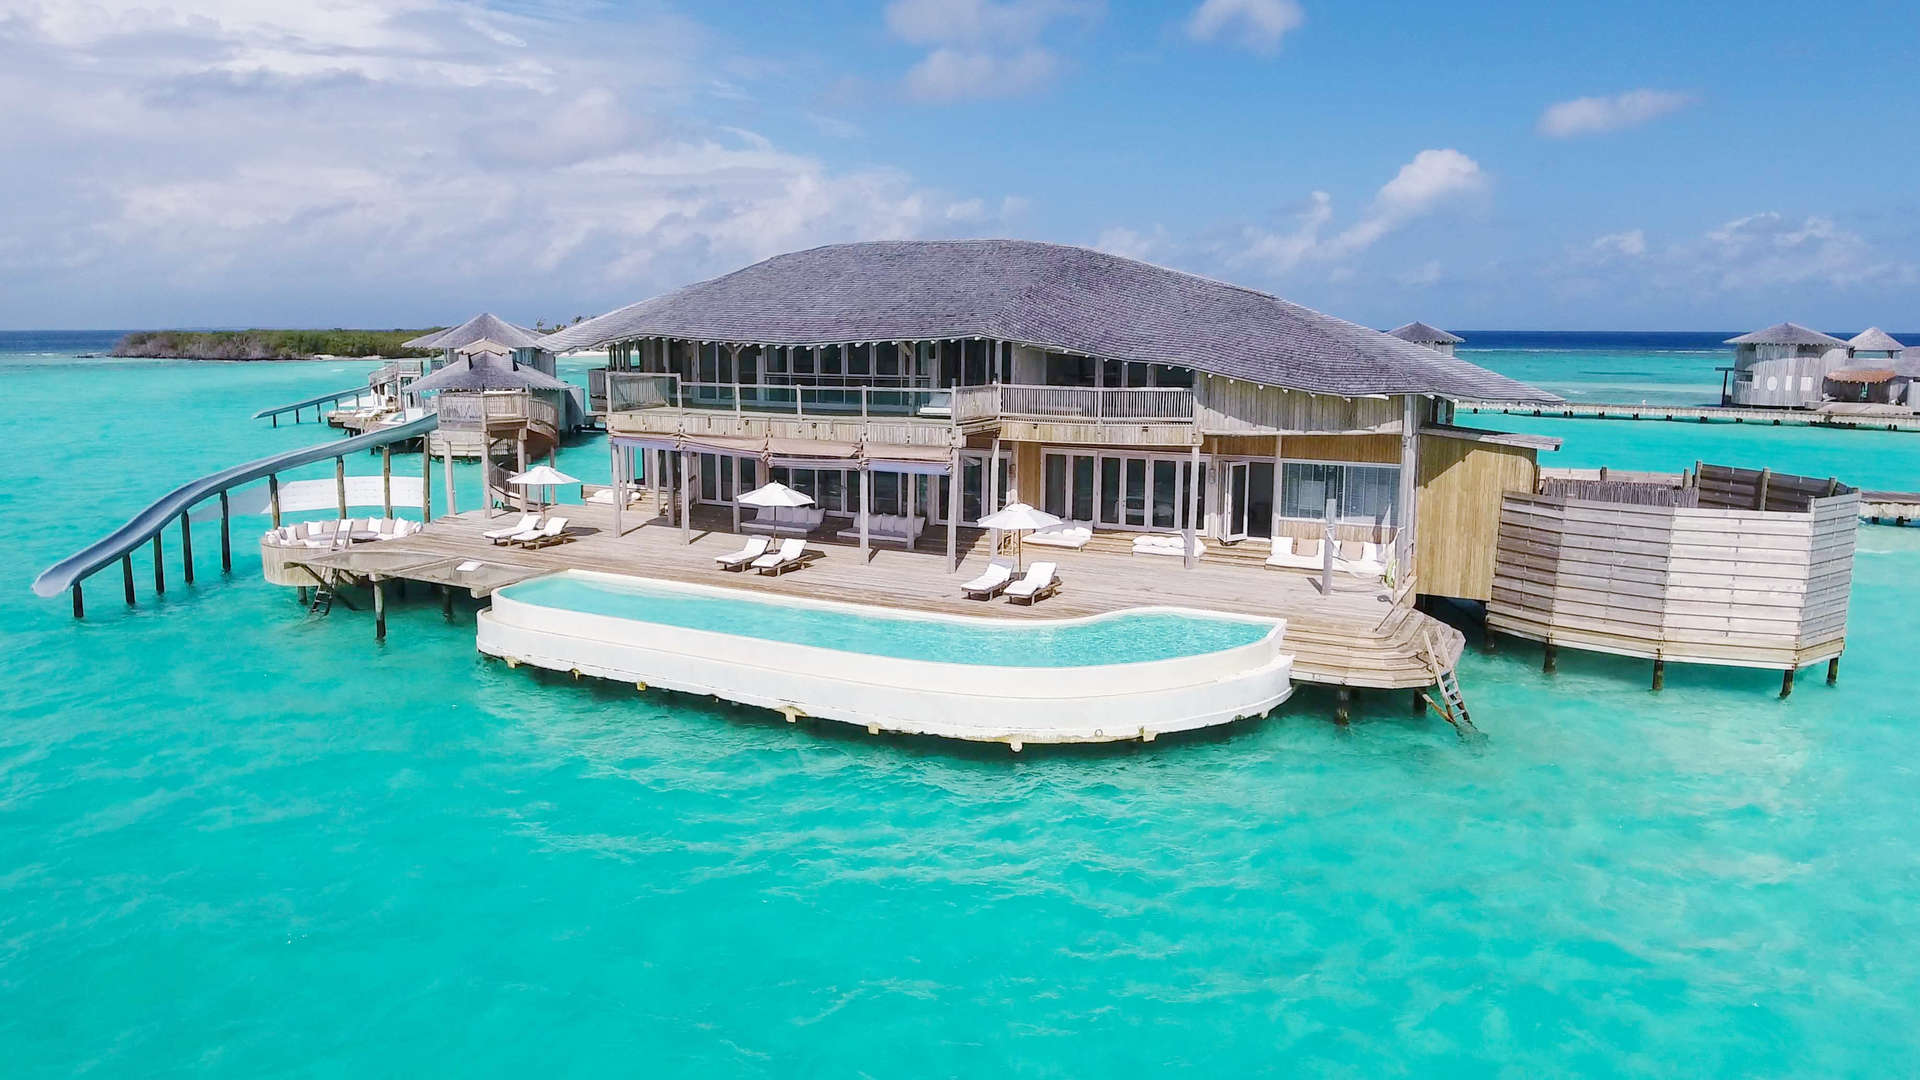 10 tips for affordable luxury travel in 10   the Luxury Travel ...